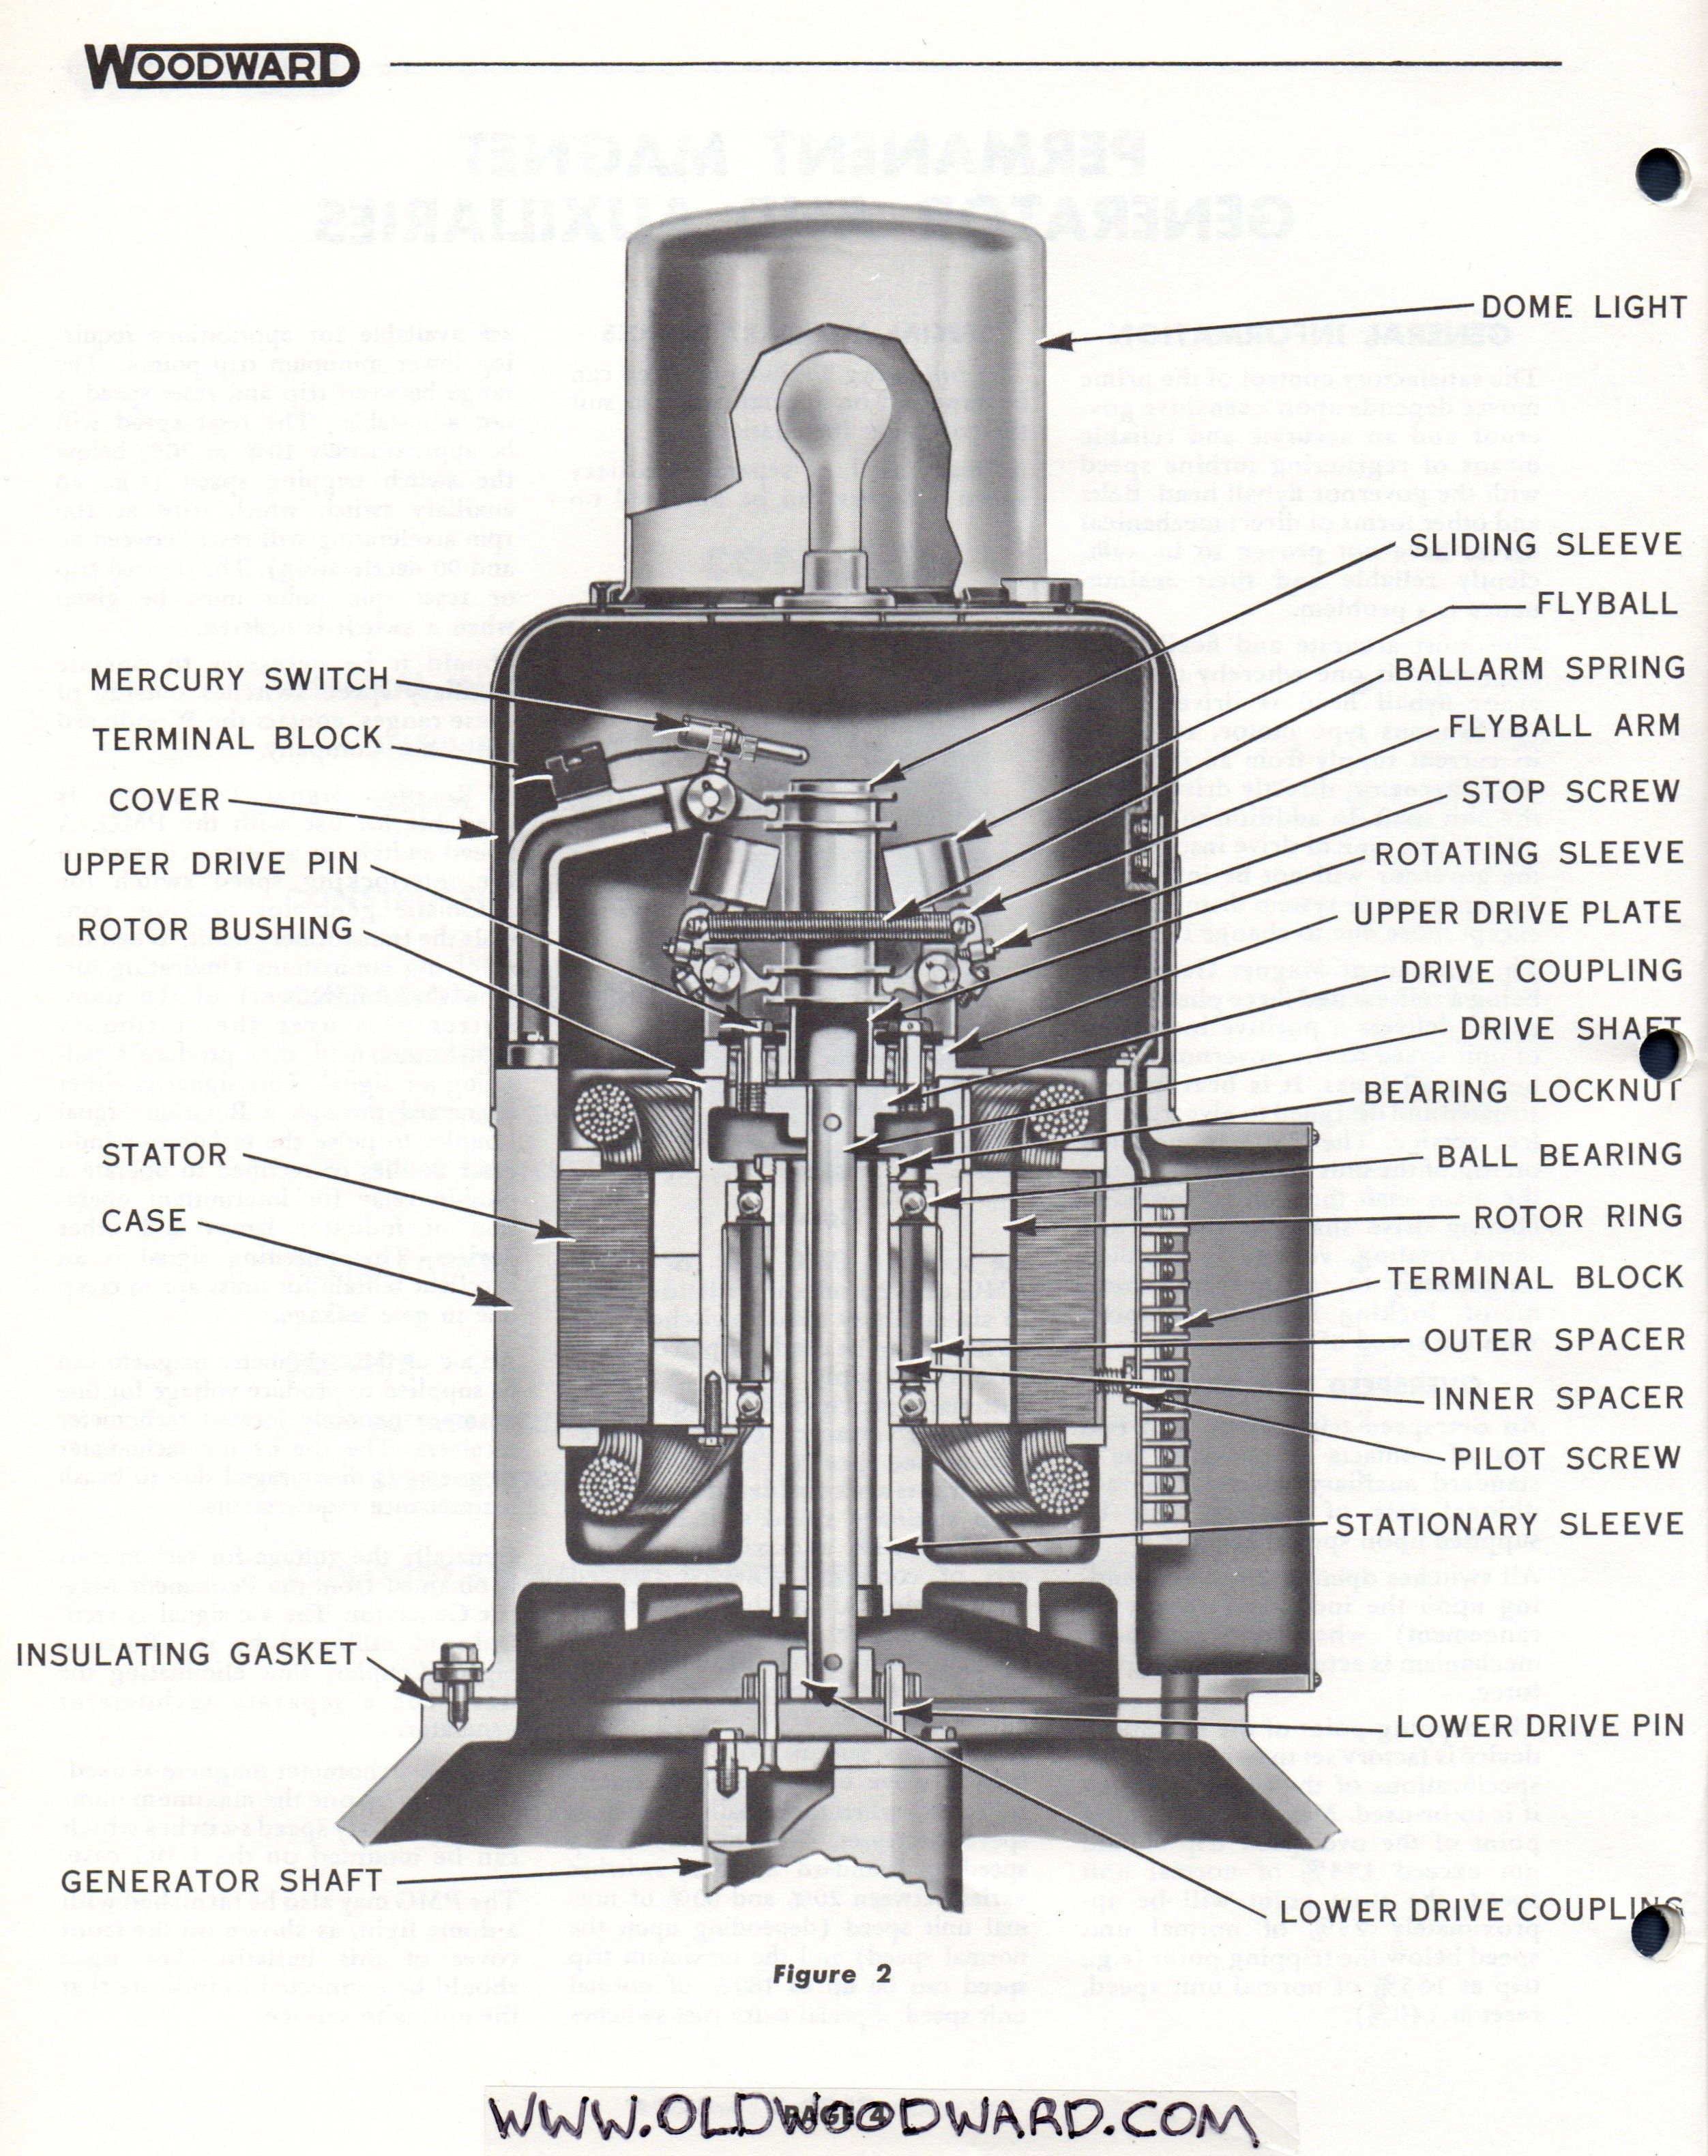 medium resolution of woodward governor company s permanent magnet generator unit for large hydro electric turbine units from woodward manual 11002k page 4